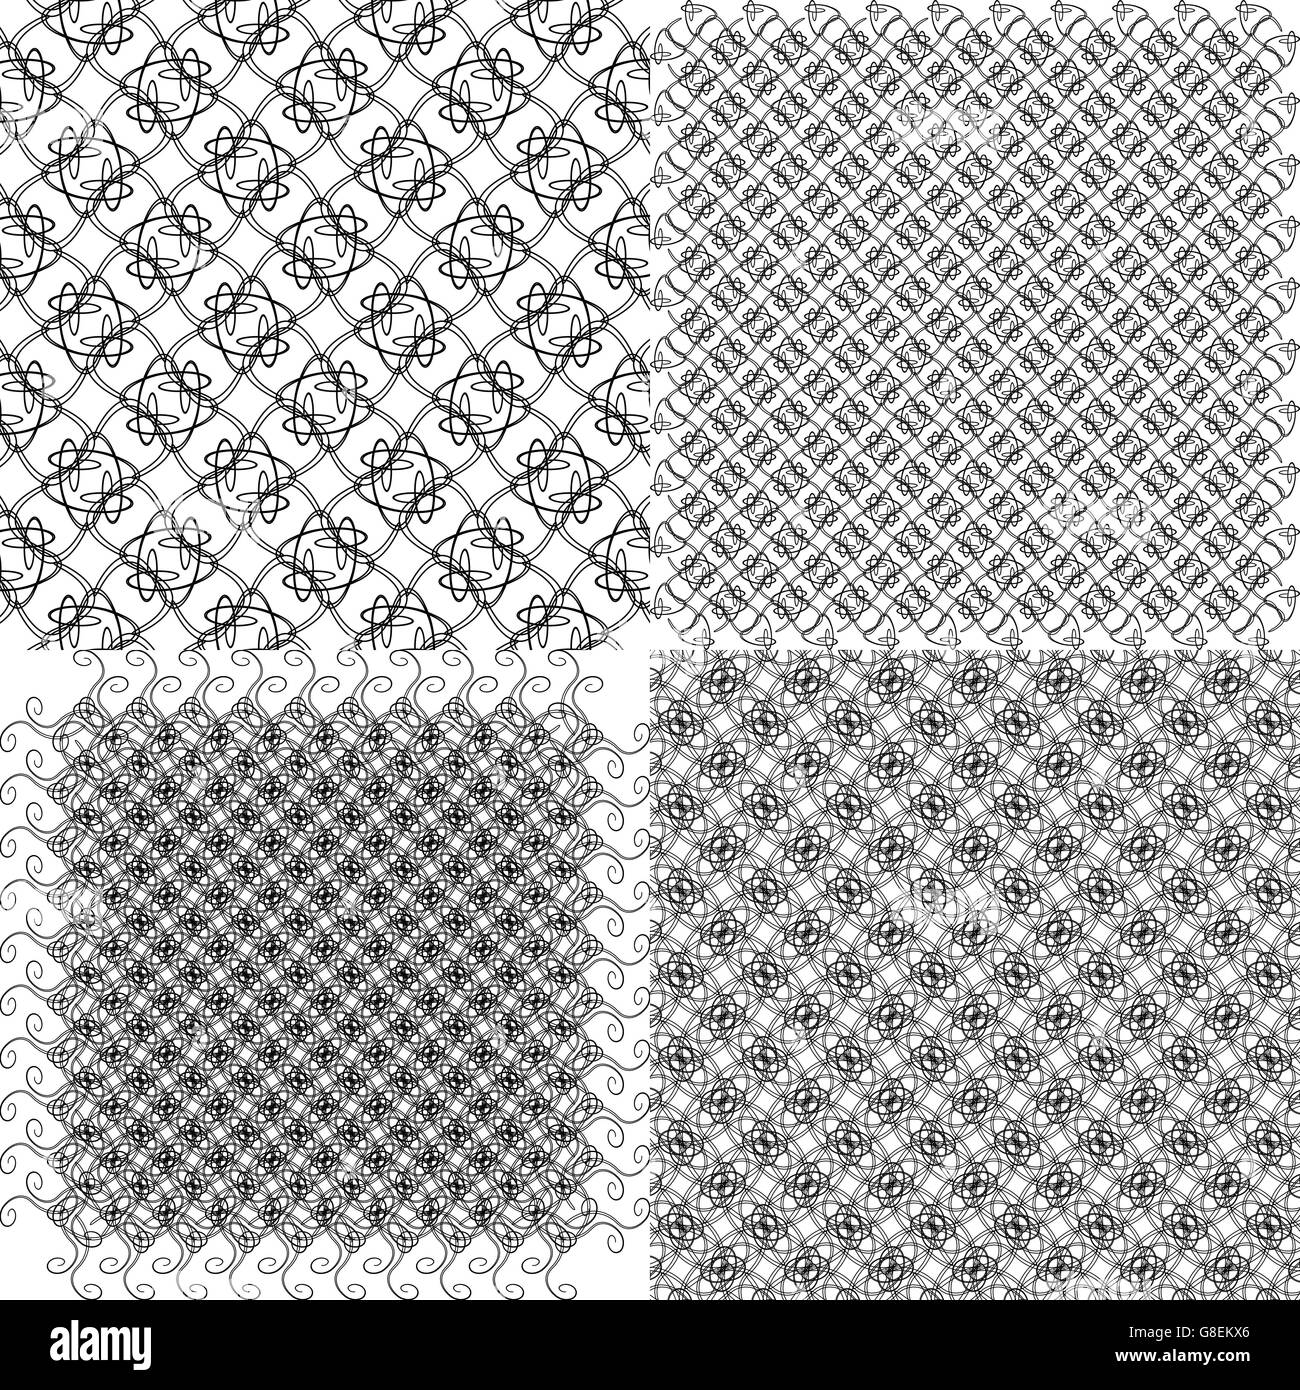 Set abstract vintage geometric wallpaper pattern background with place for your text - Stock Image